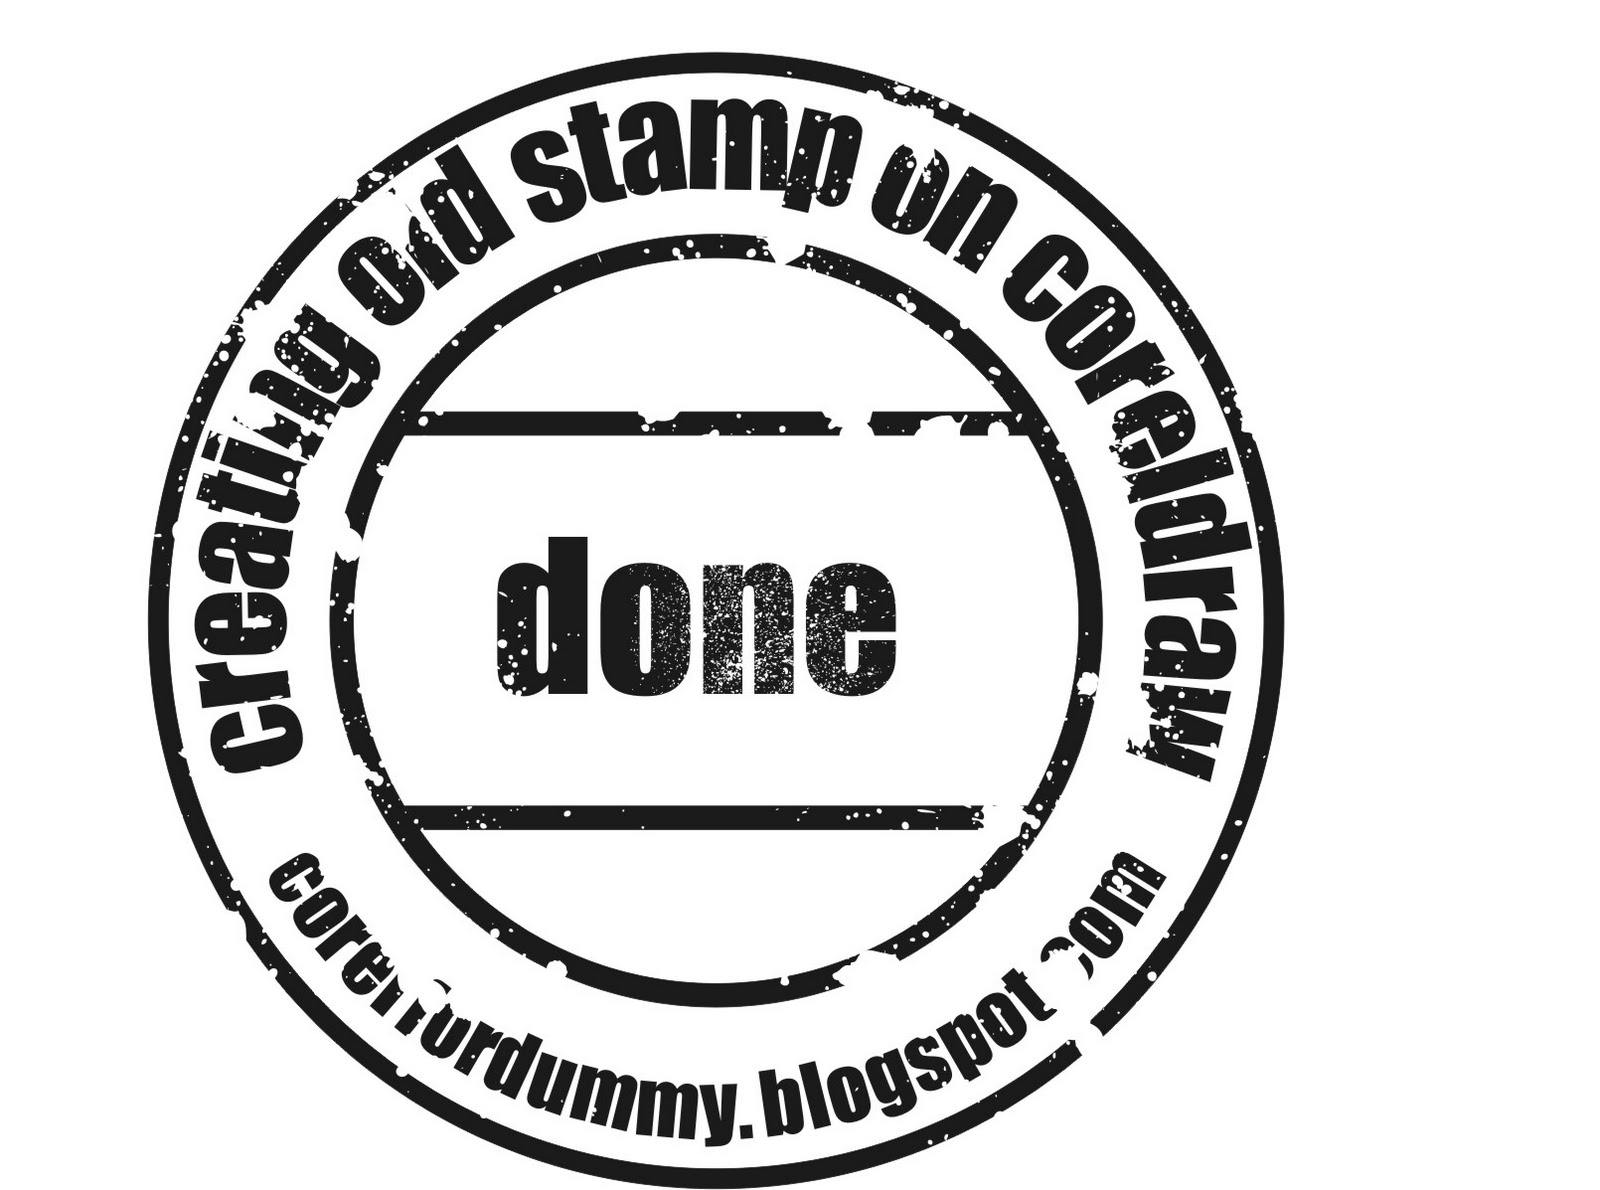 Corel draw vs photoshop for t shirt design - Creating Old Stamp On Coreldraw